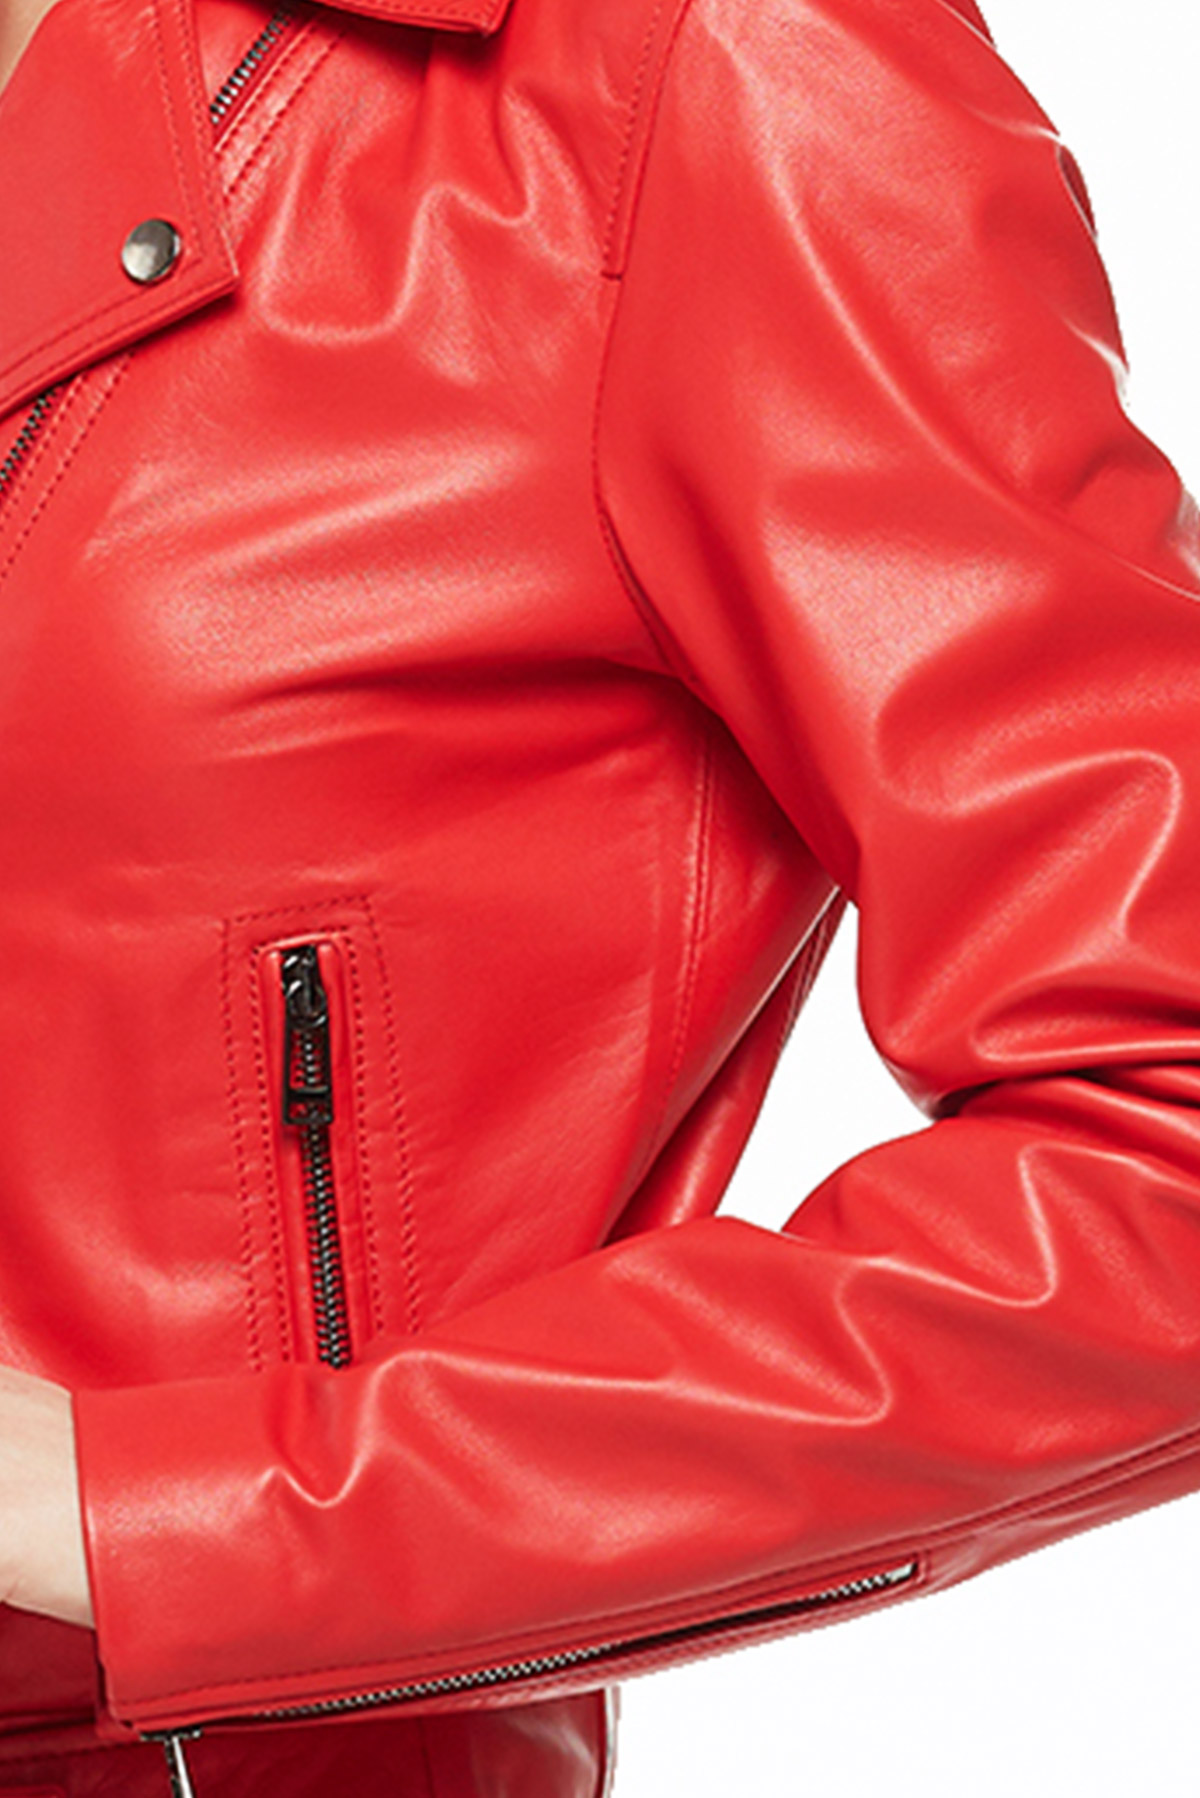 nordstrom leather jacket with hood